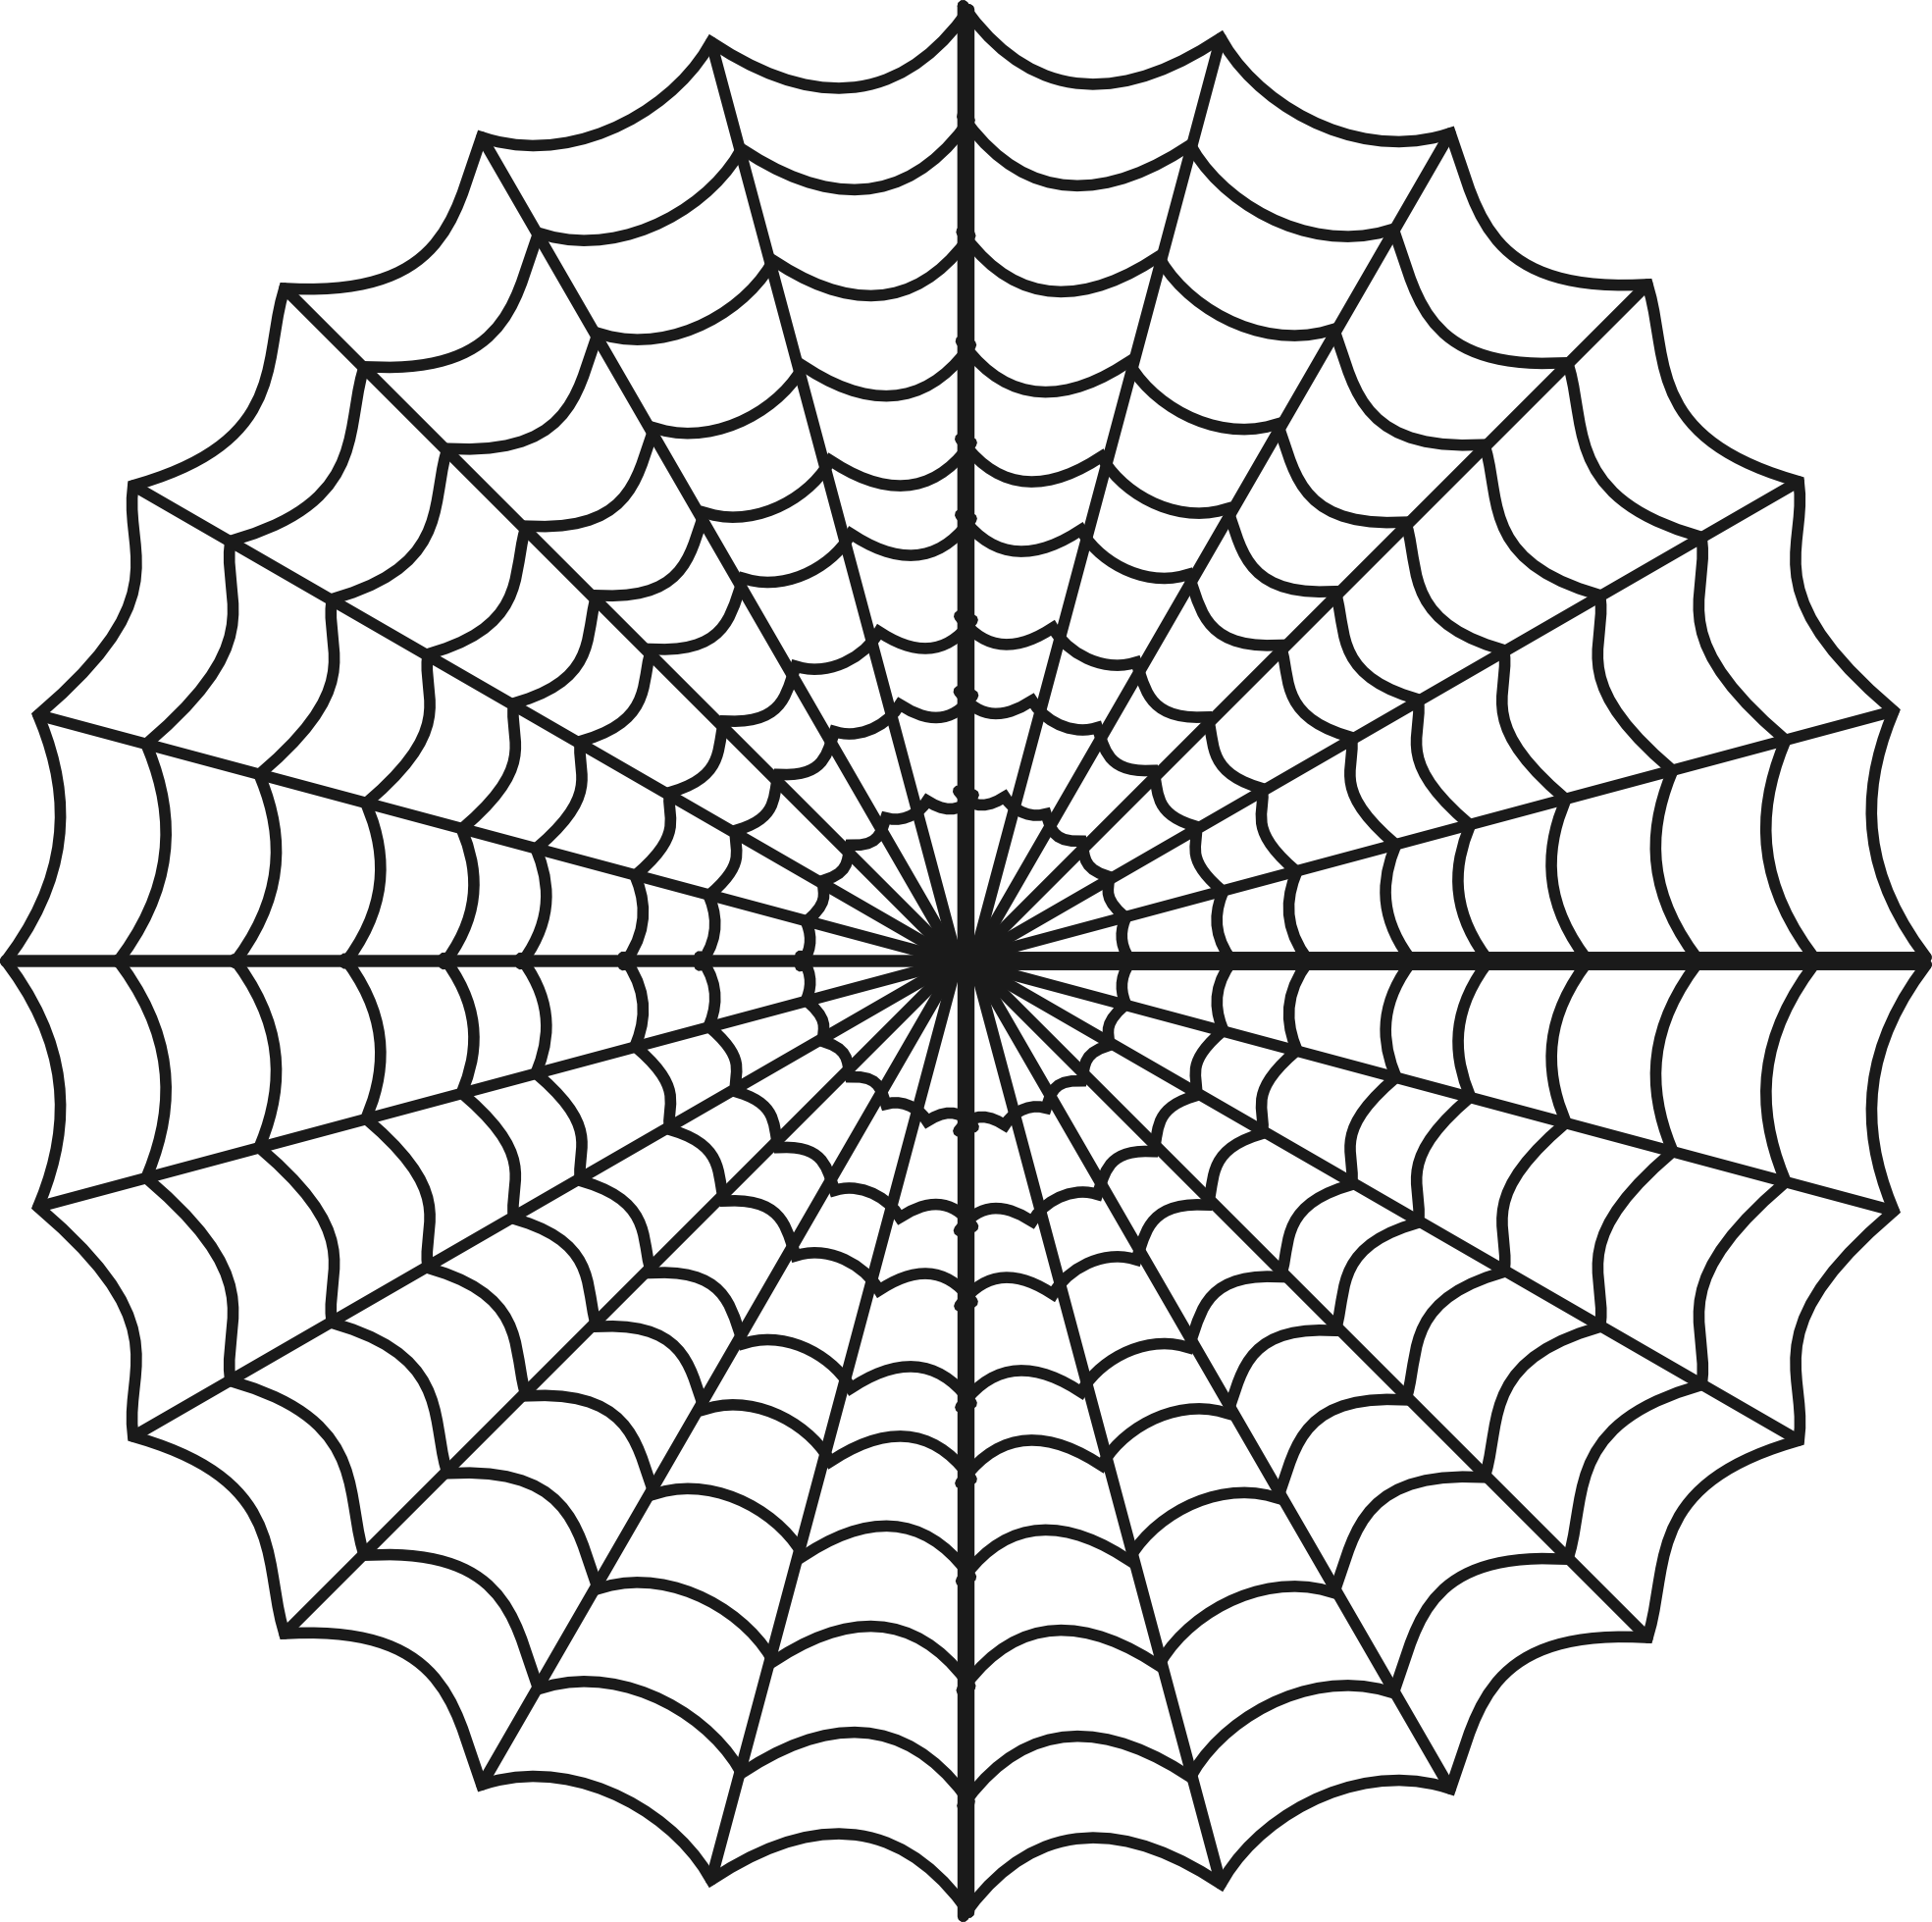 Spider Web Images Clipart - ClipArt Best